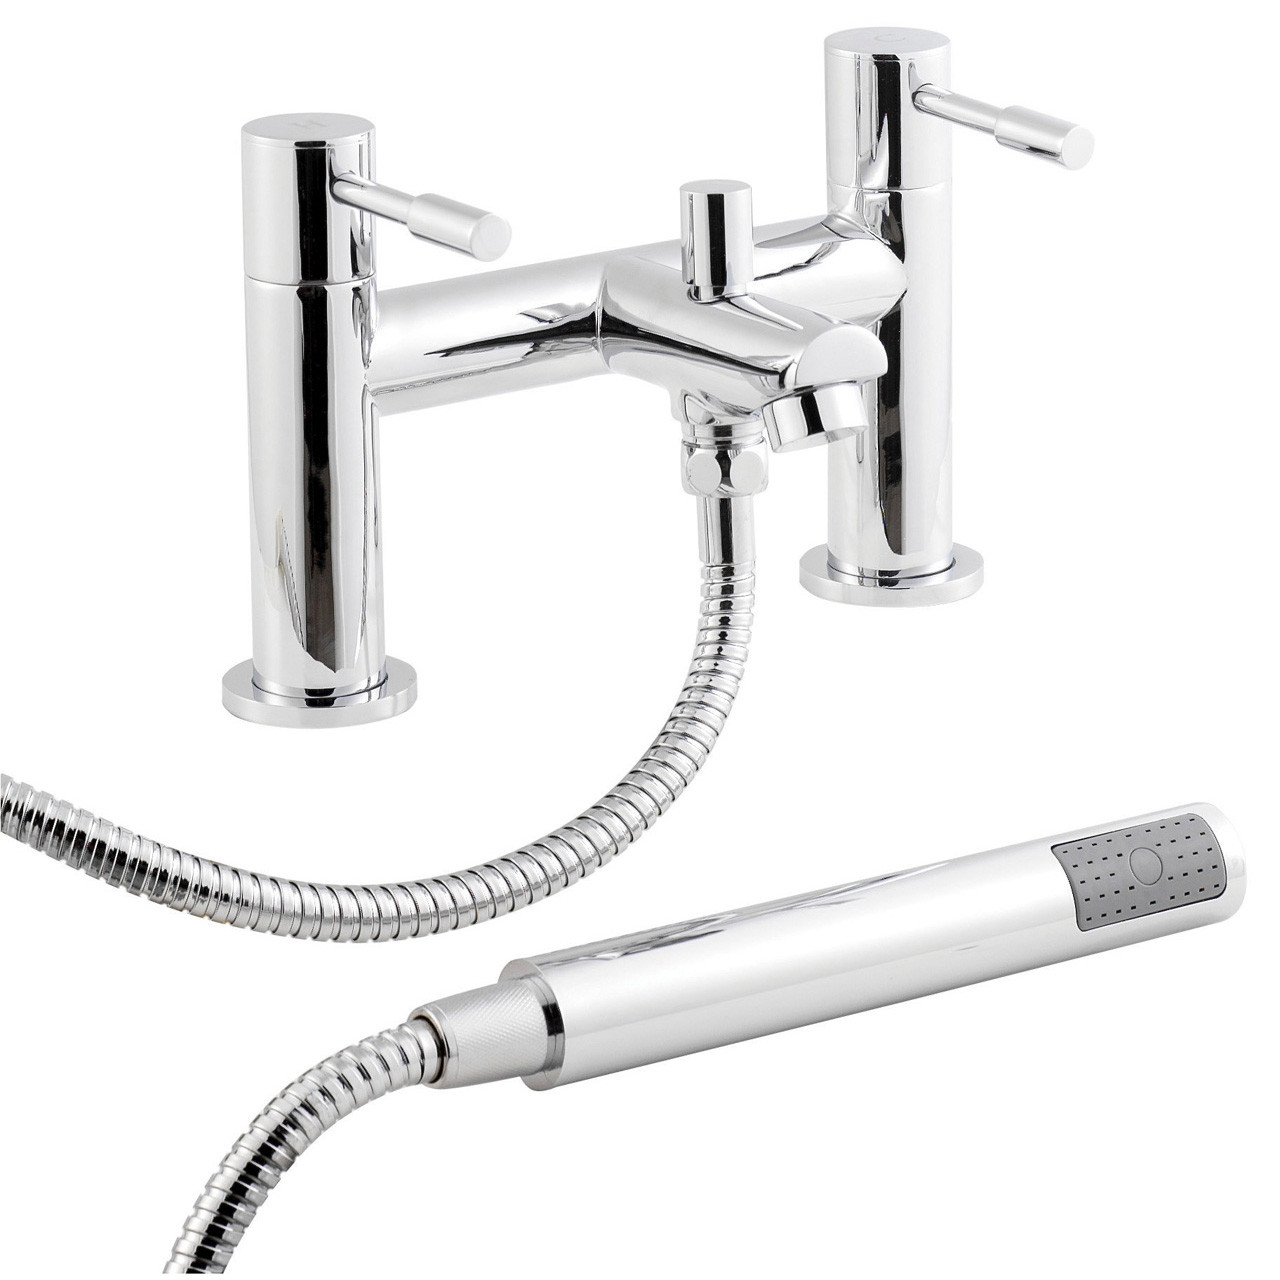 Premier Series 2 Bath and Shower Mixer with Shower Kit and Bracket - FJ314